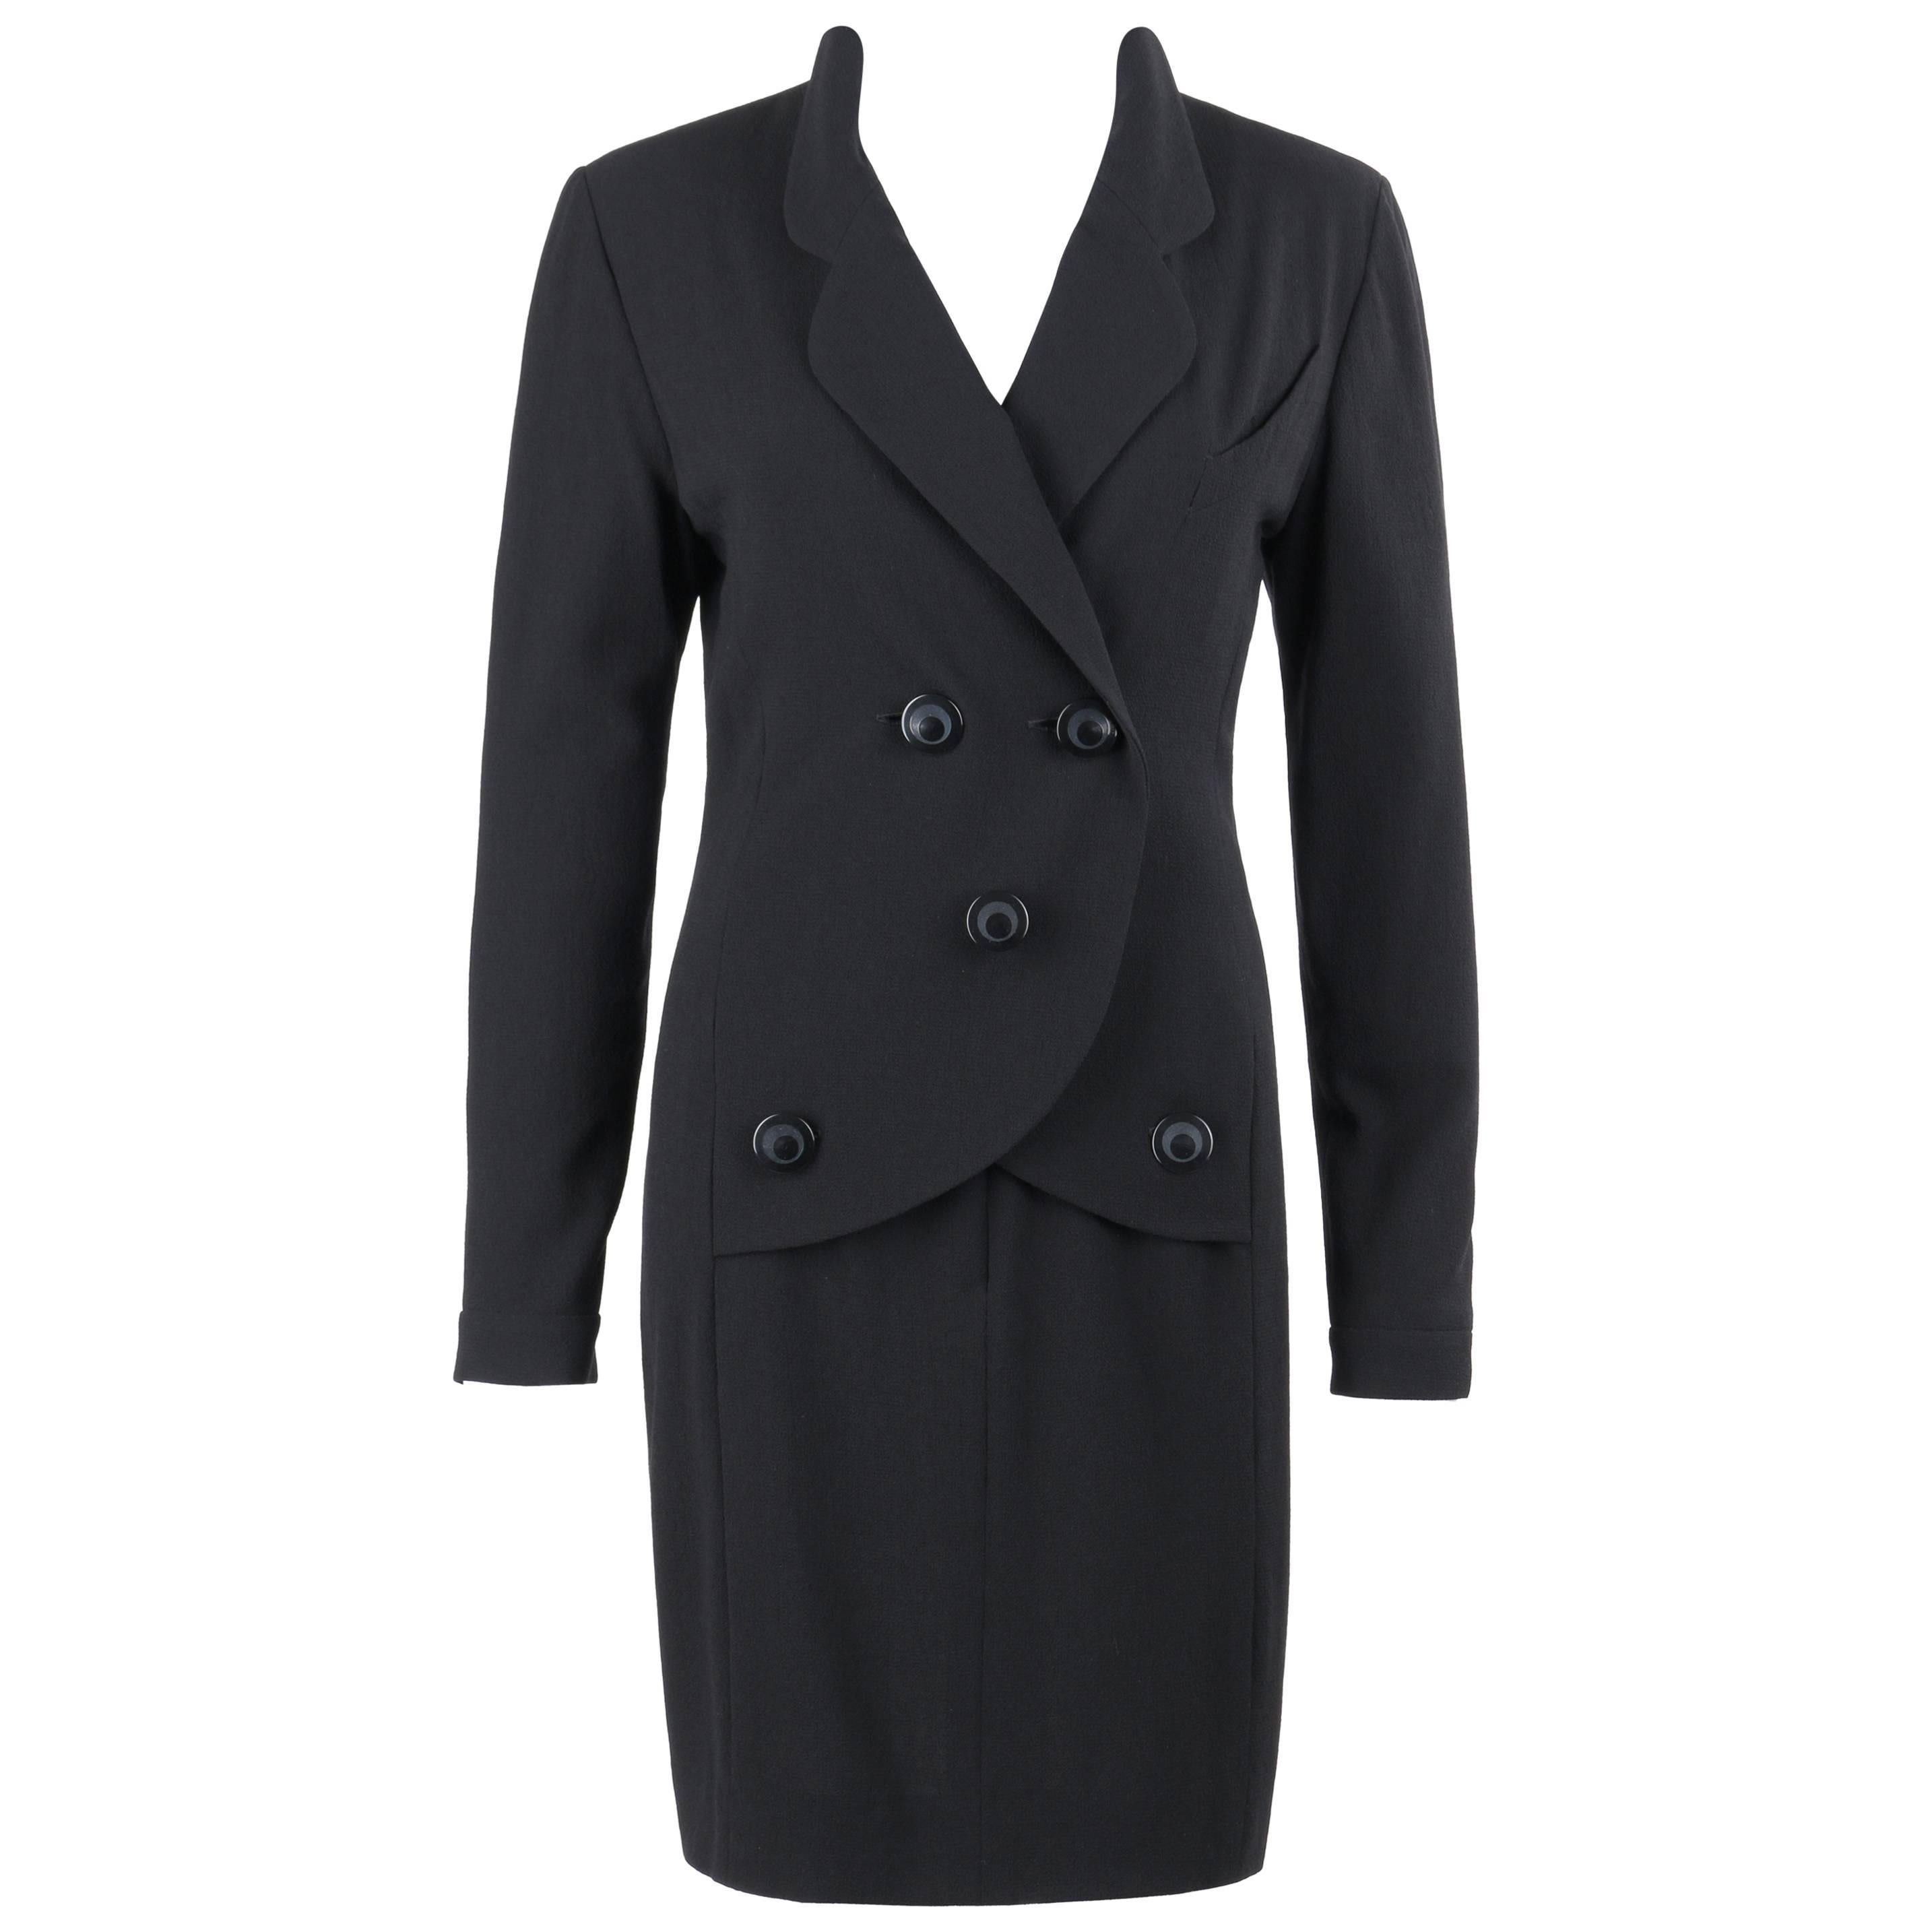 CHANEL Boutique c.1980's Black Wool Crepe Double Breasted One Piece Dress Suit